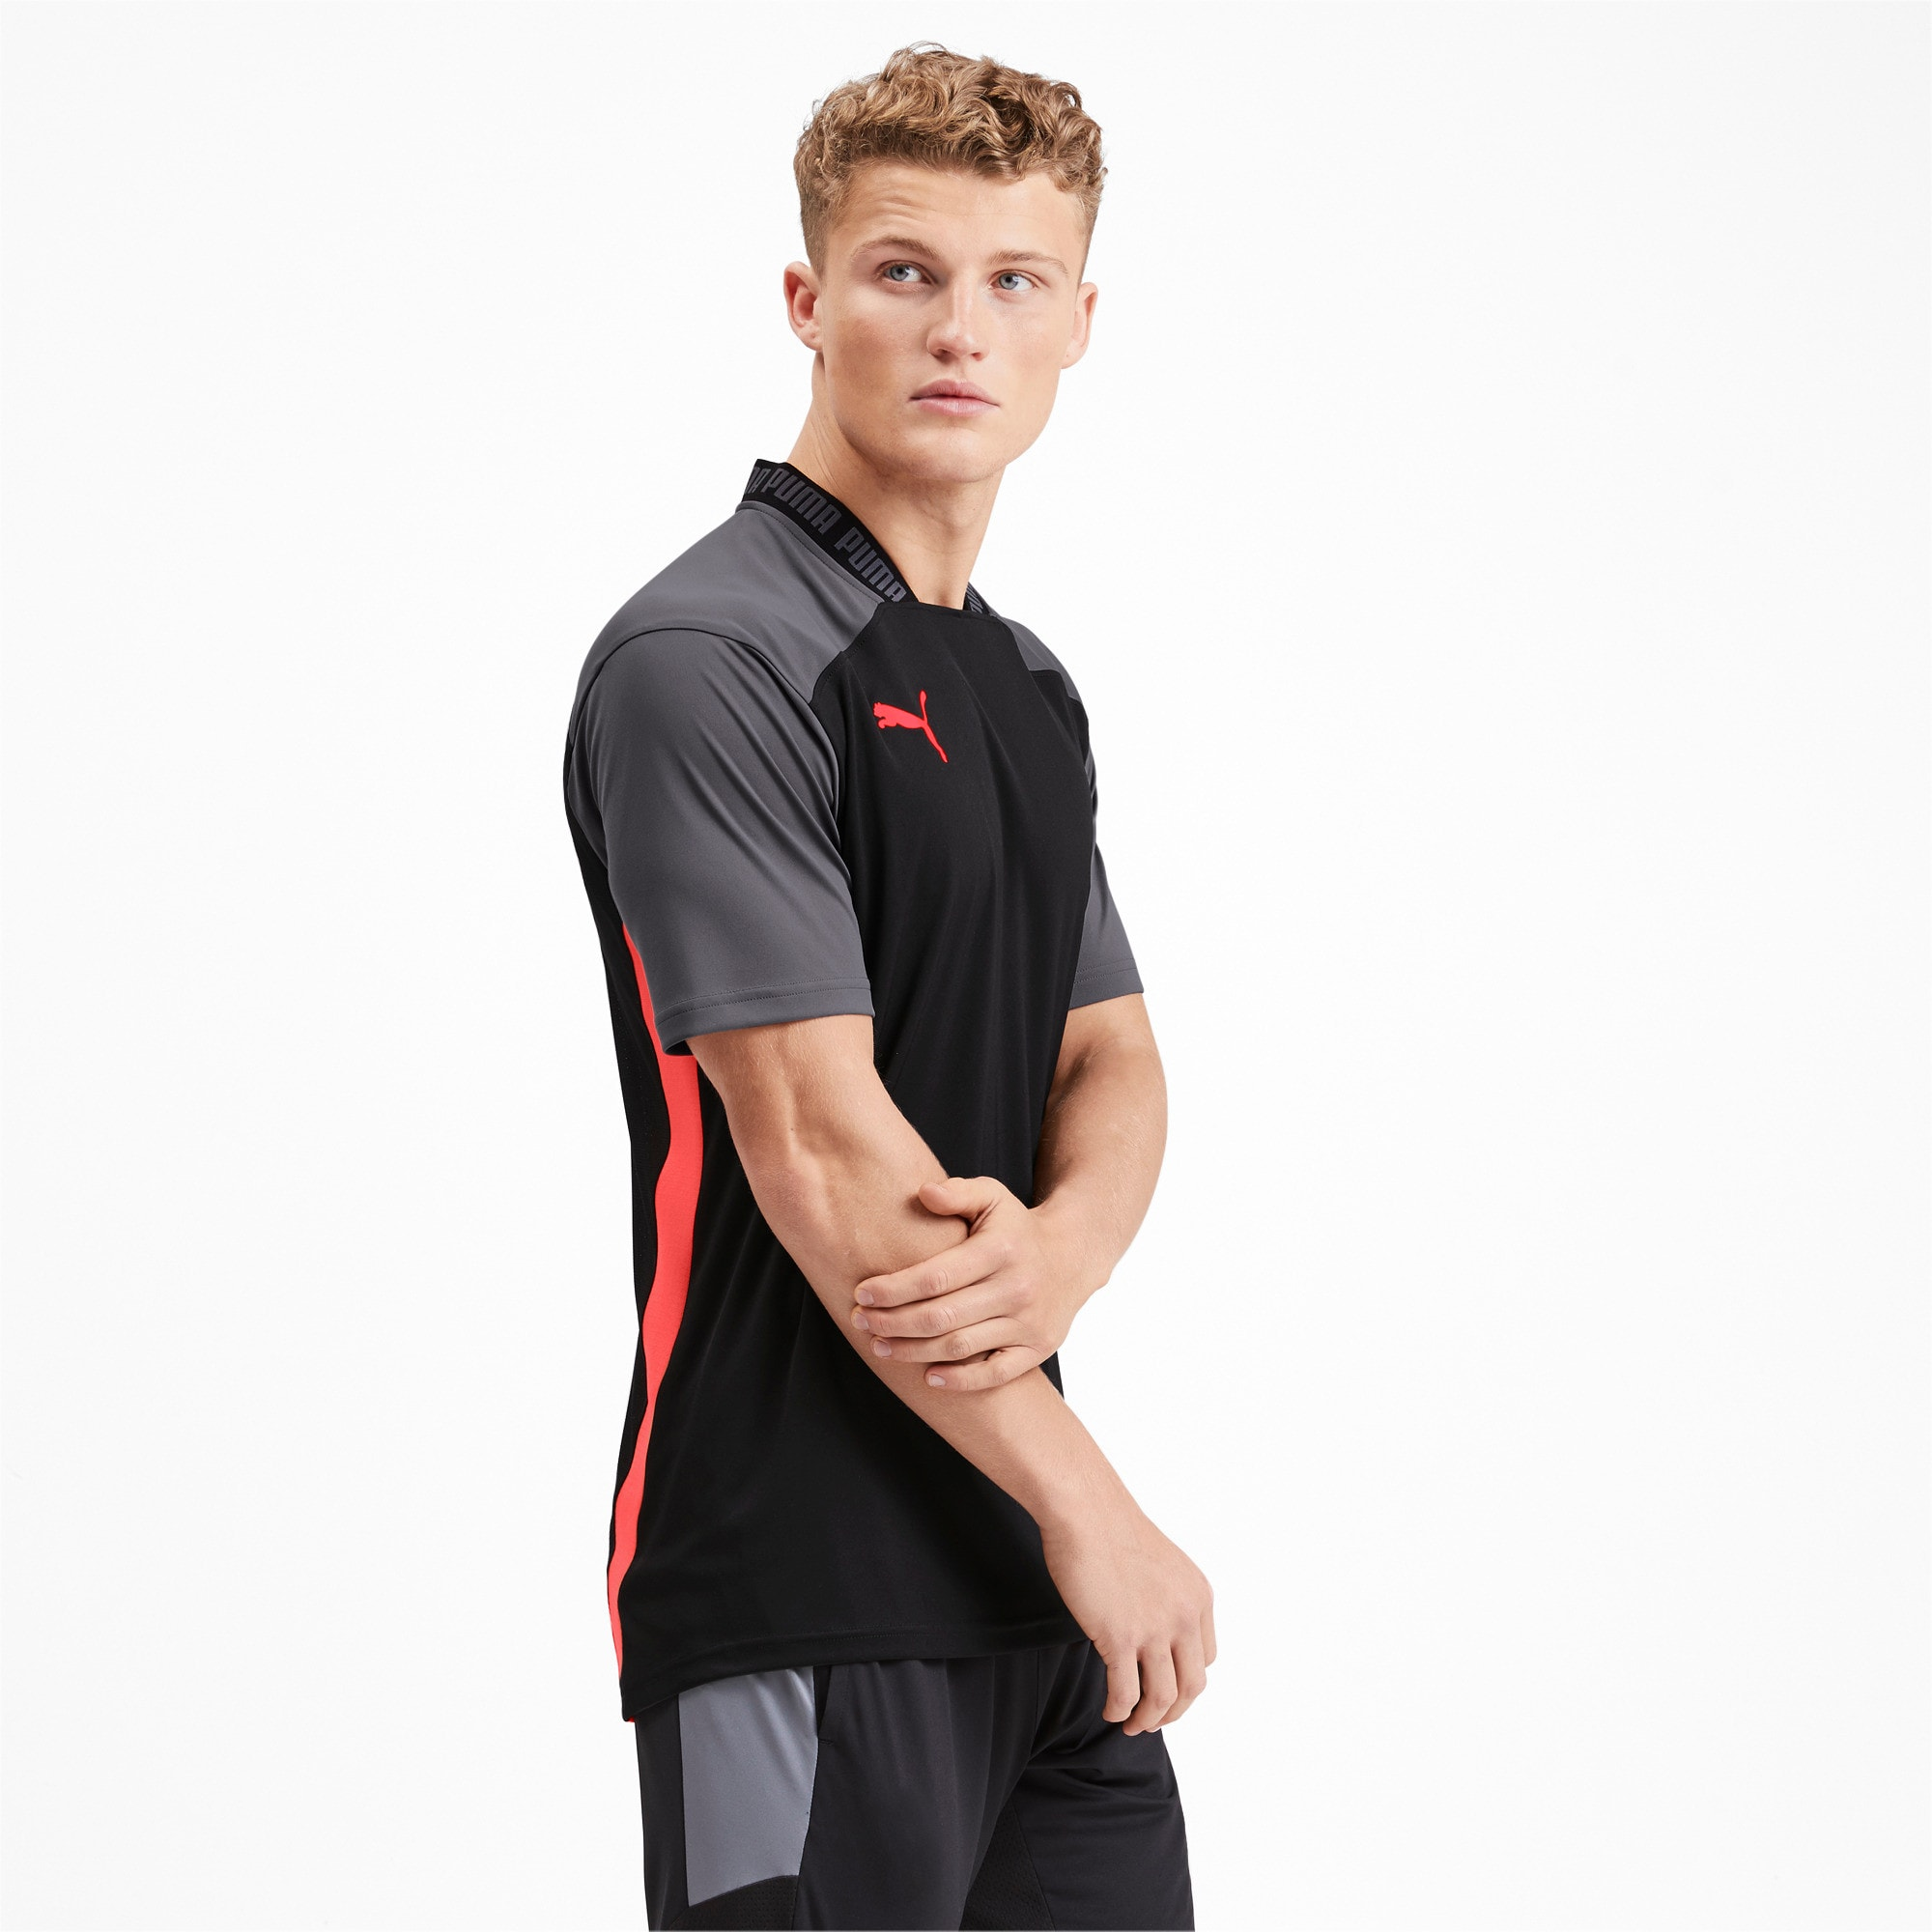 Thumbnail 1 of Pro T-shirt voor heren, Puma Black-Nrgy Red, medium